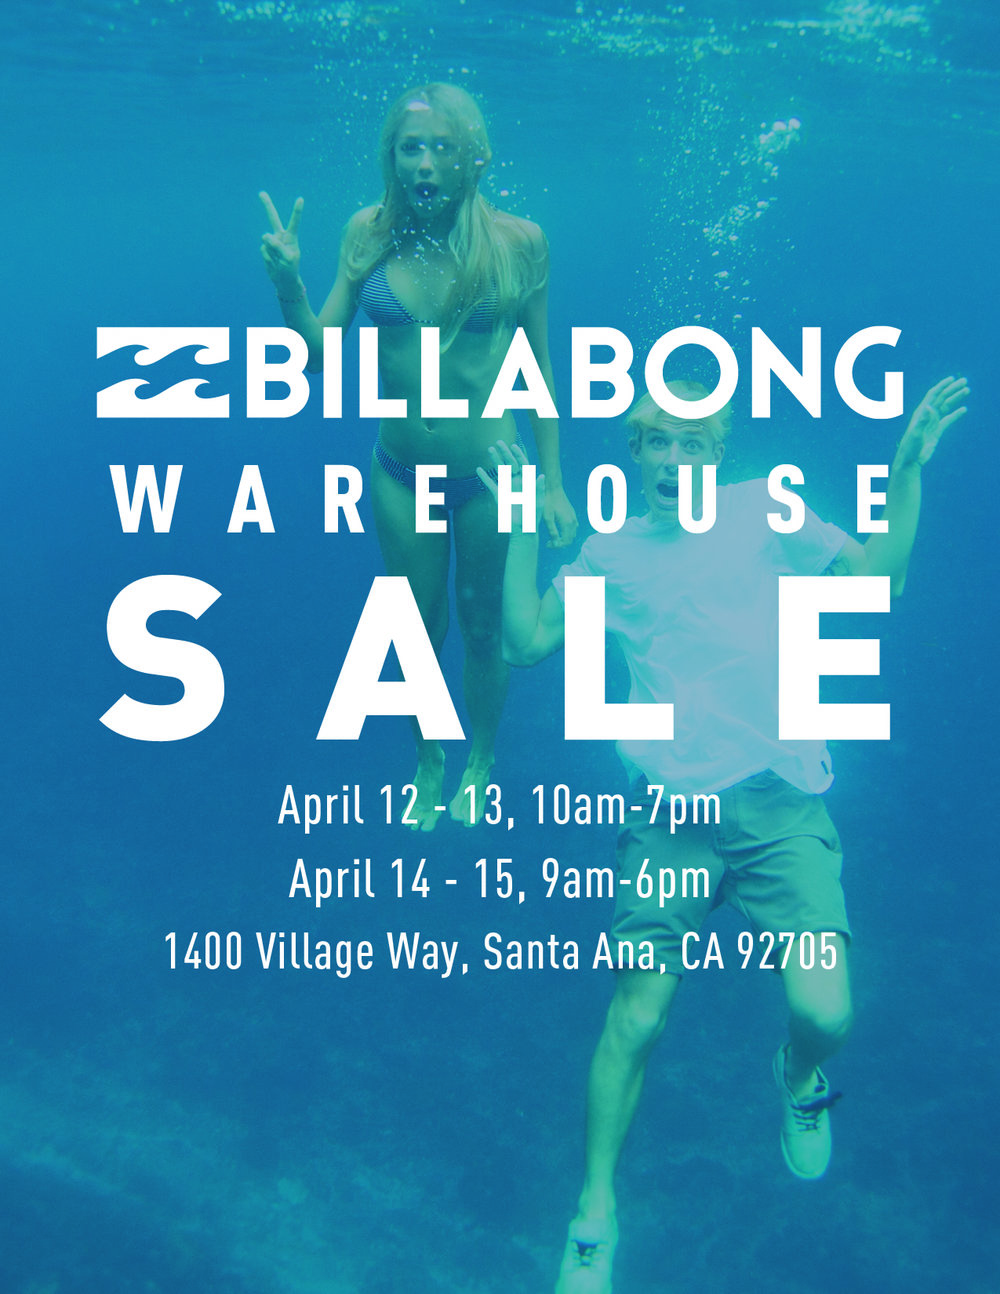 BBG_WarehouseSale_Flyer_4.25x5.5.jpg